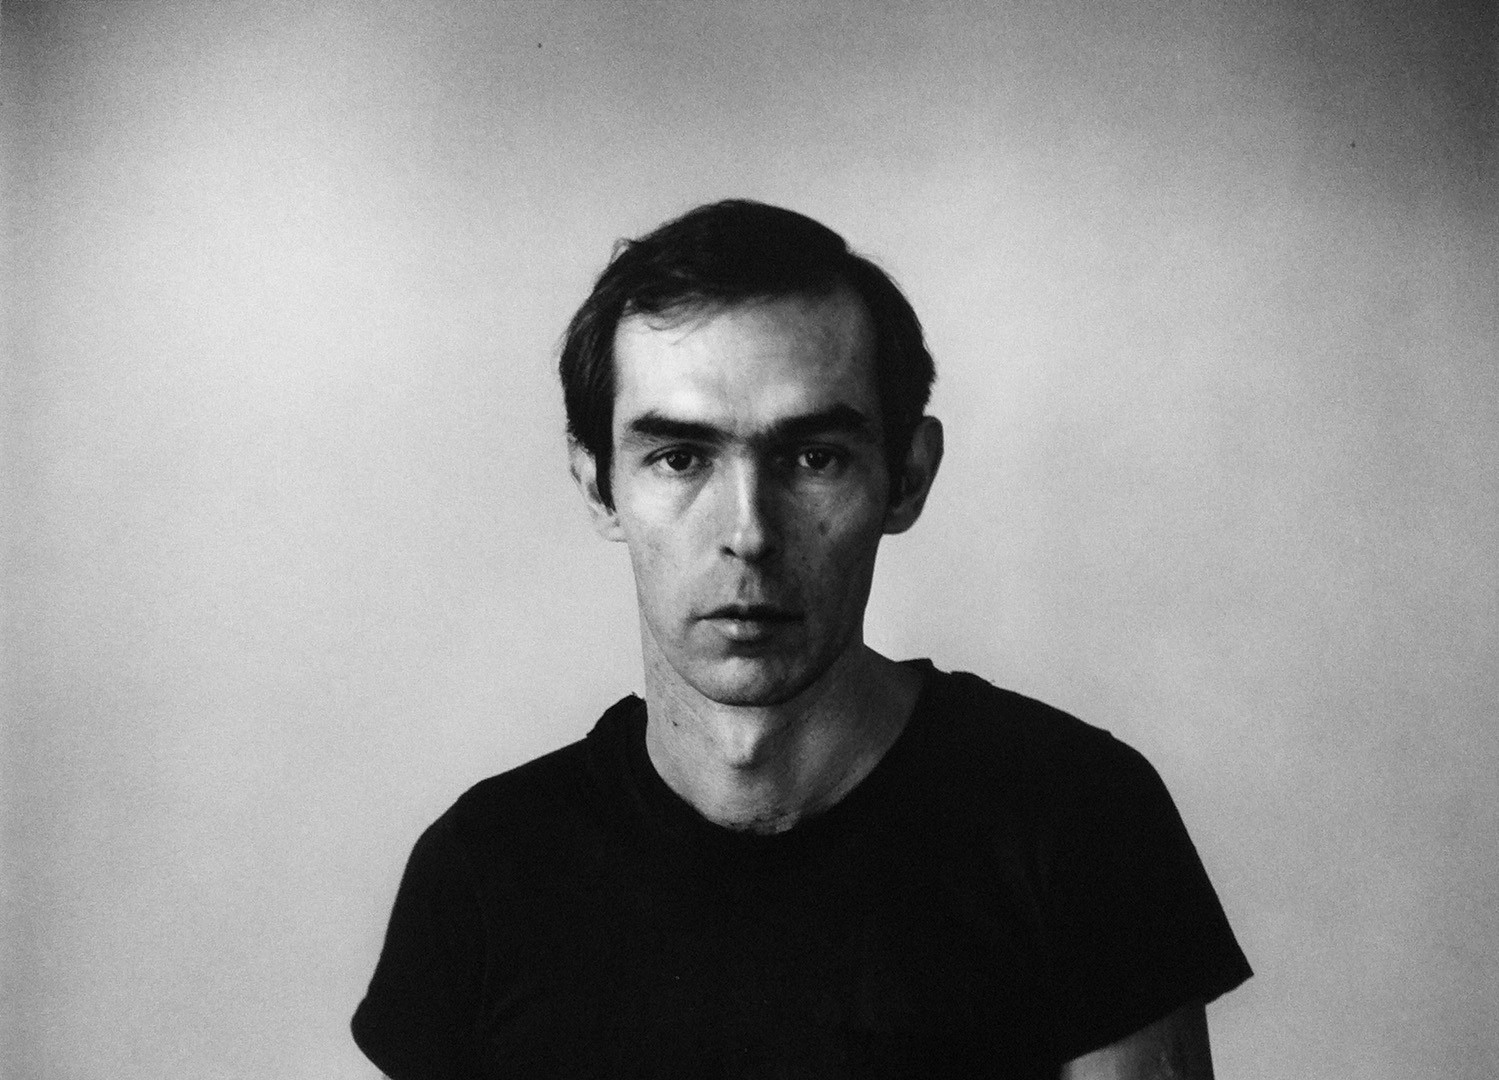 Peter Hujar, Self-Portrait in Black T-Shirt, 1976